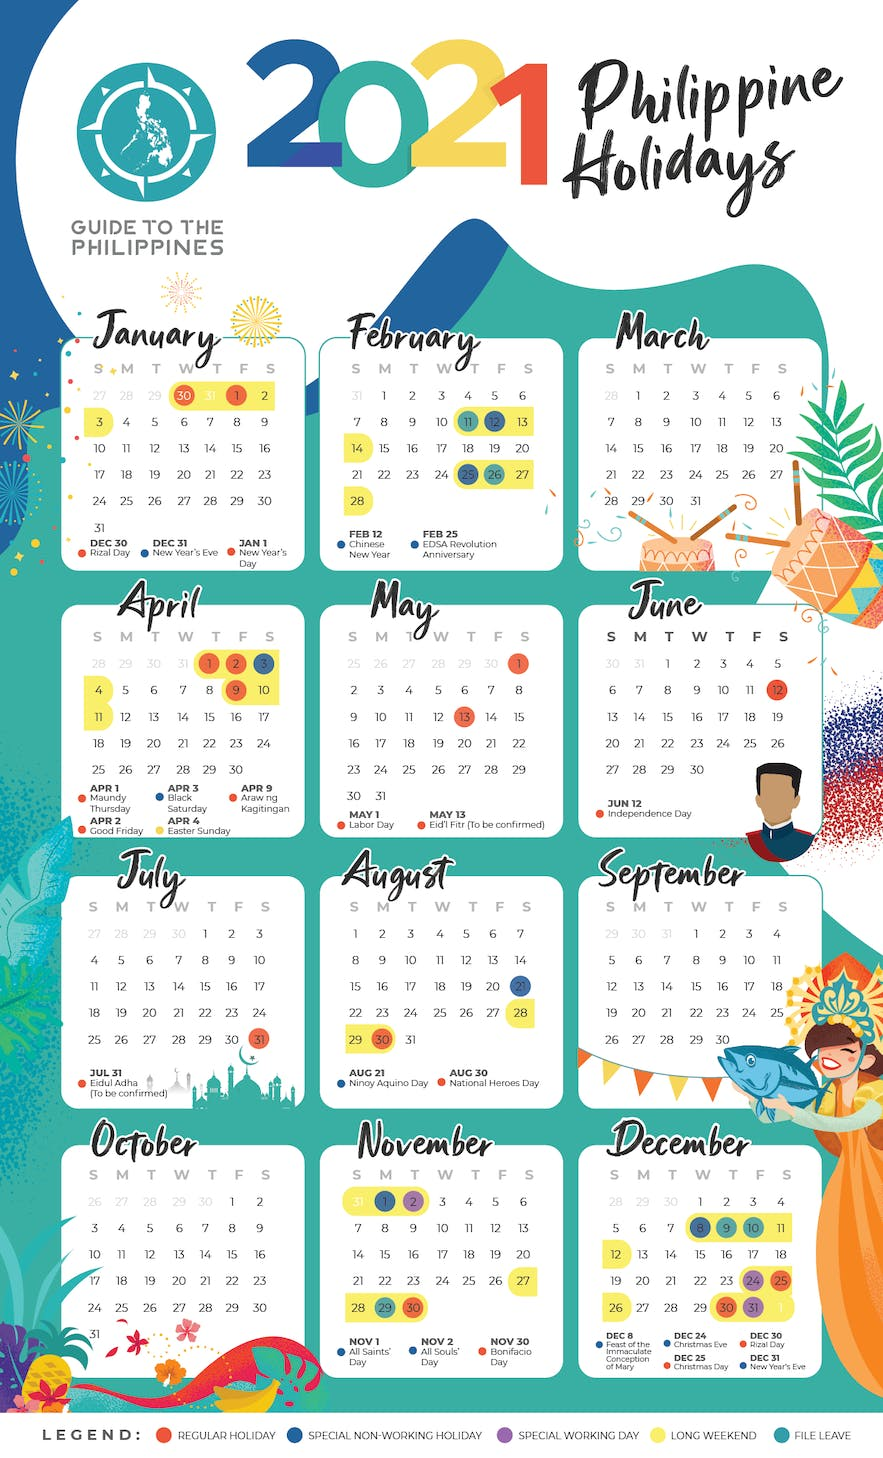 2021 holidays and long weekends in the Philippines